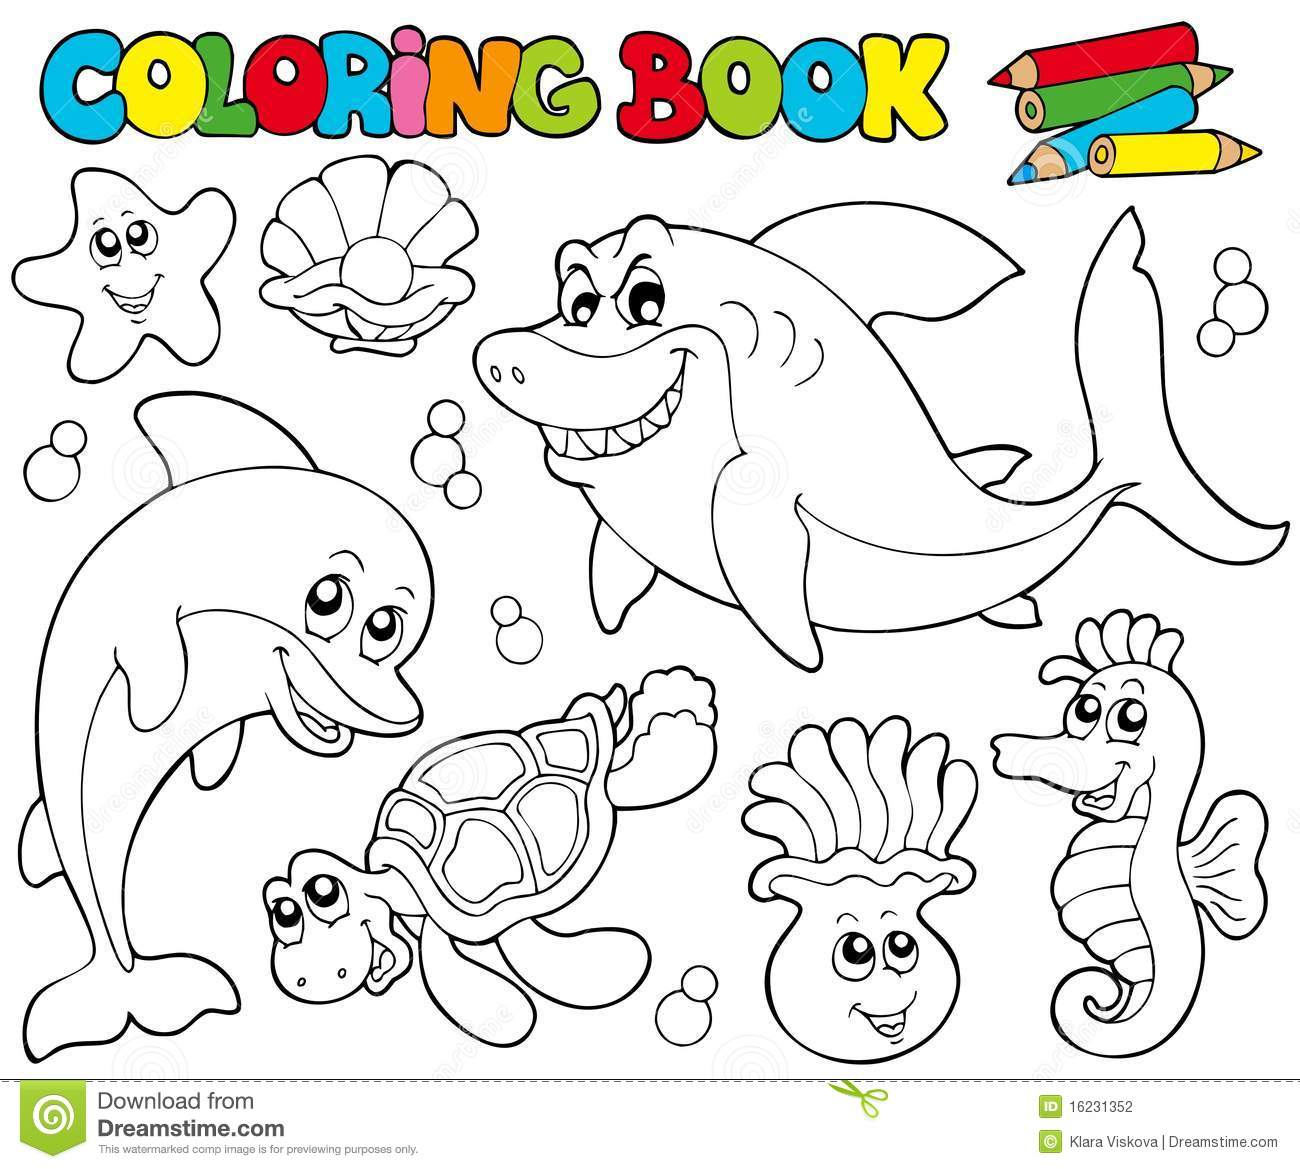 coloring book - Coulering Book